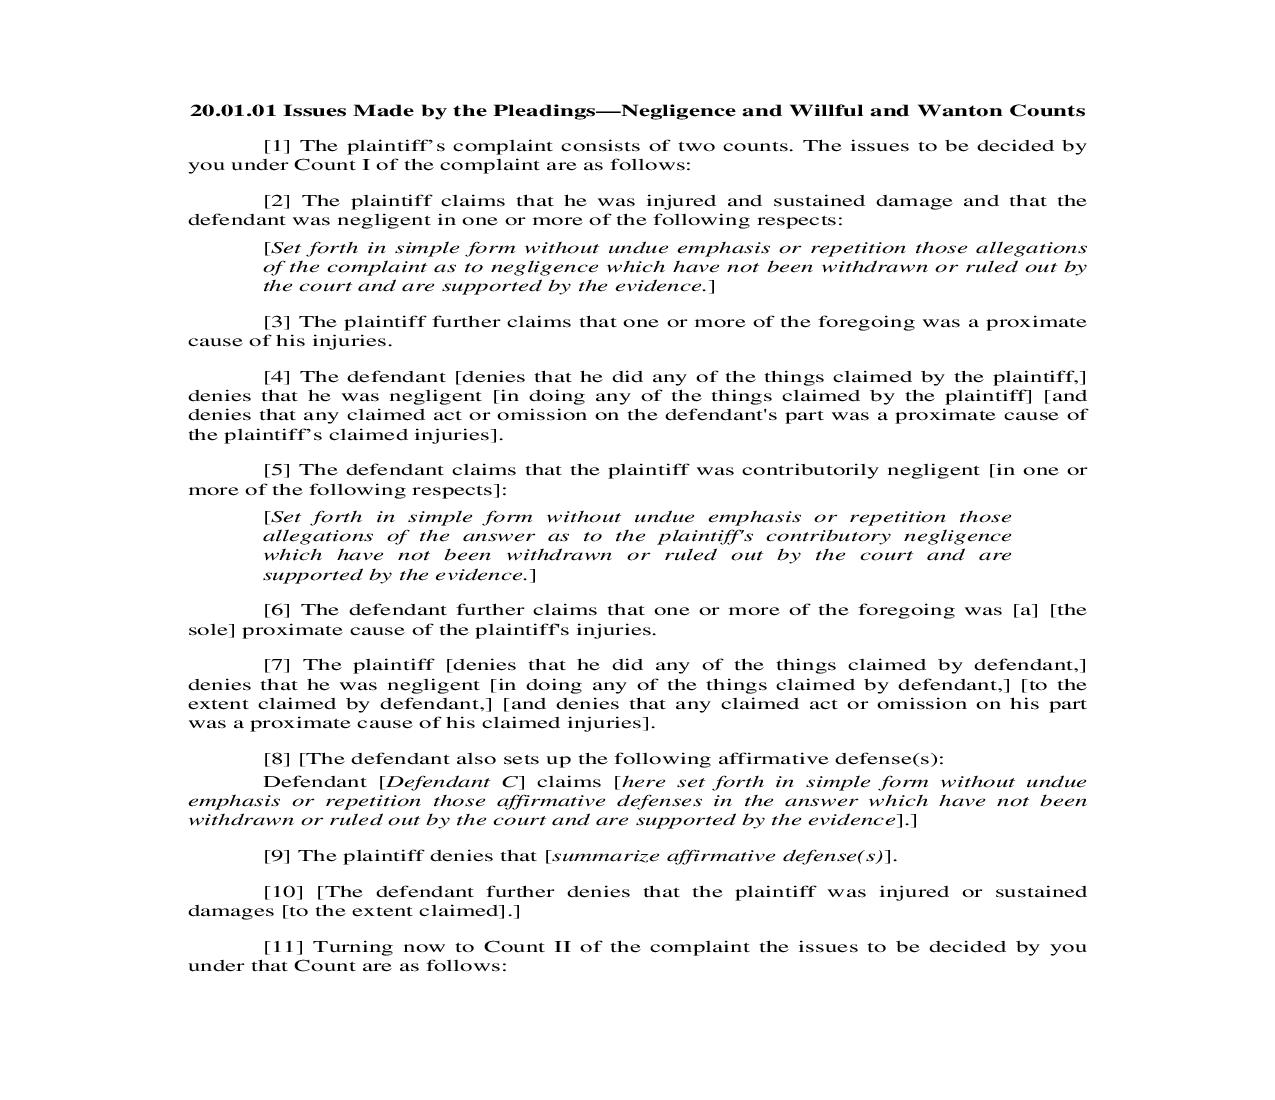 20.01.01. Issues Made By The Pleadings-Negligence and Willful and Wanton Counts   Pdf Doc Docx   Illinois_JI